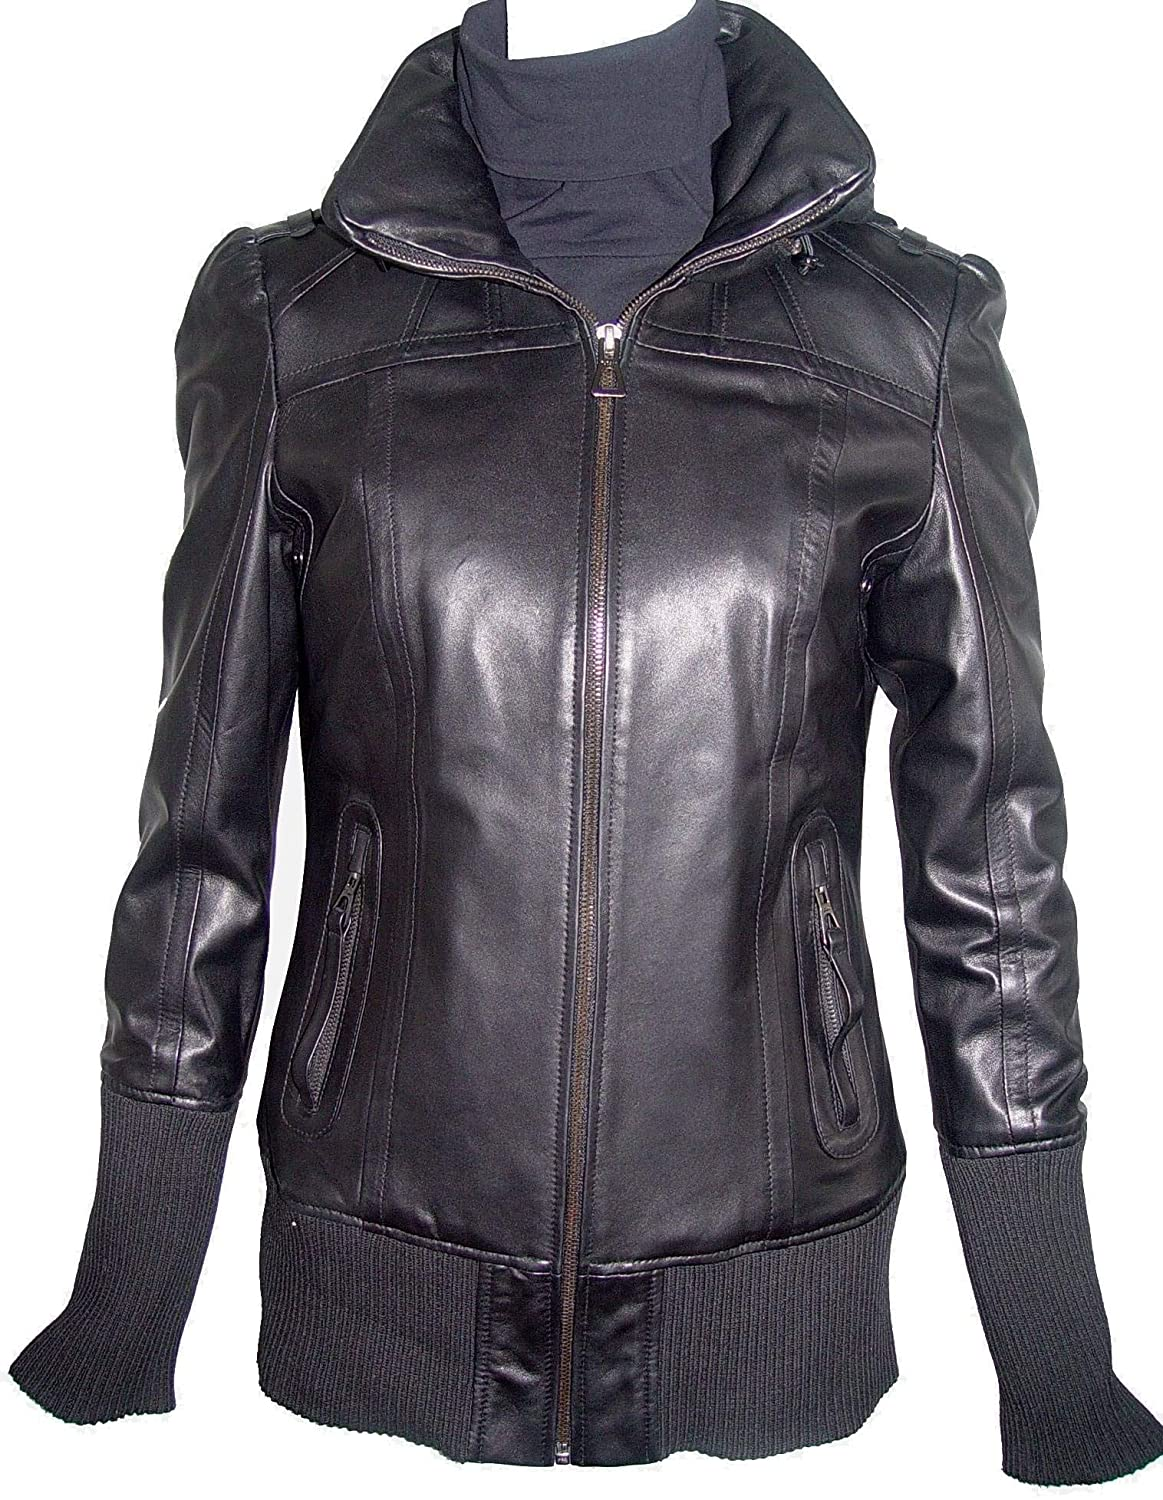 Paccilo 4021 Luxury Best Cute Leather Jackets Fashion Leather Hoodie Jackets 4021prmphrz